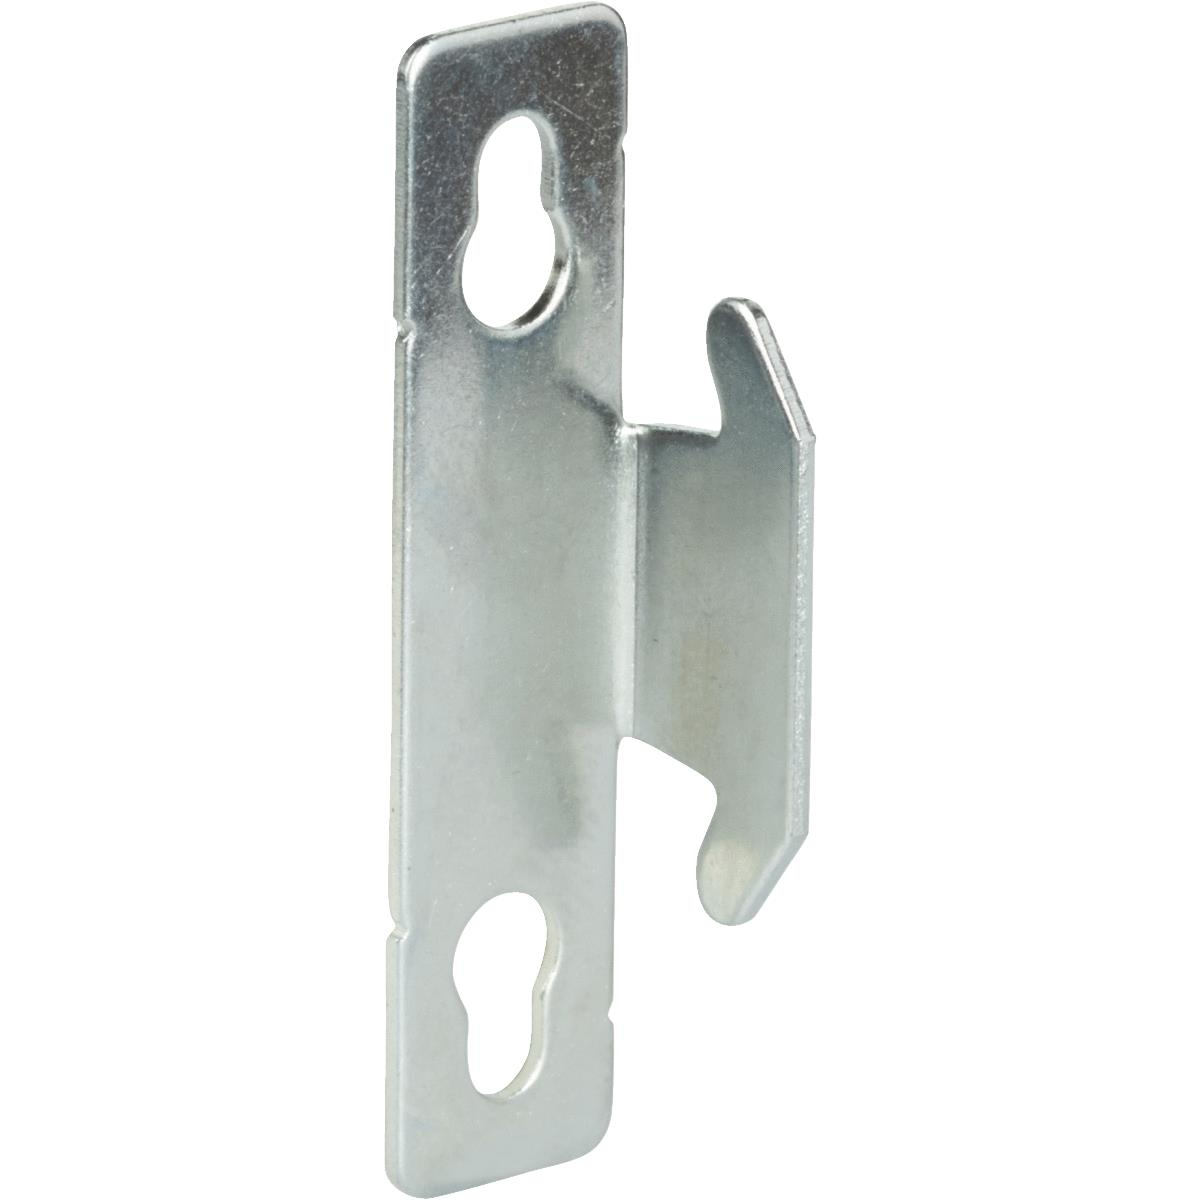 KENNEY MFG KN852 Double Curtain Rod Bracket